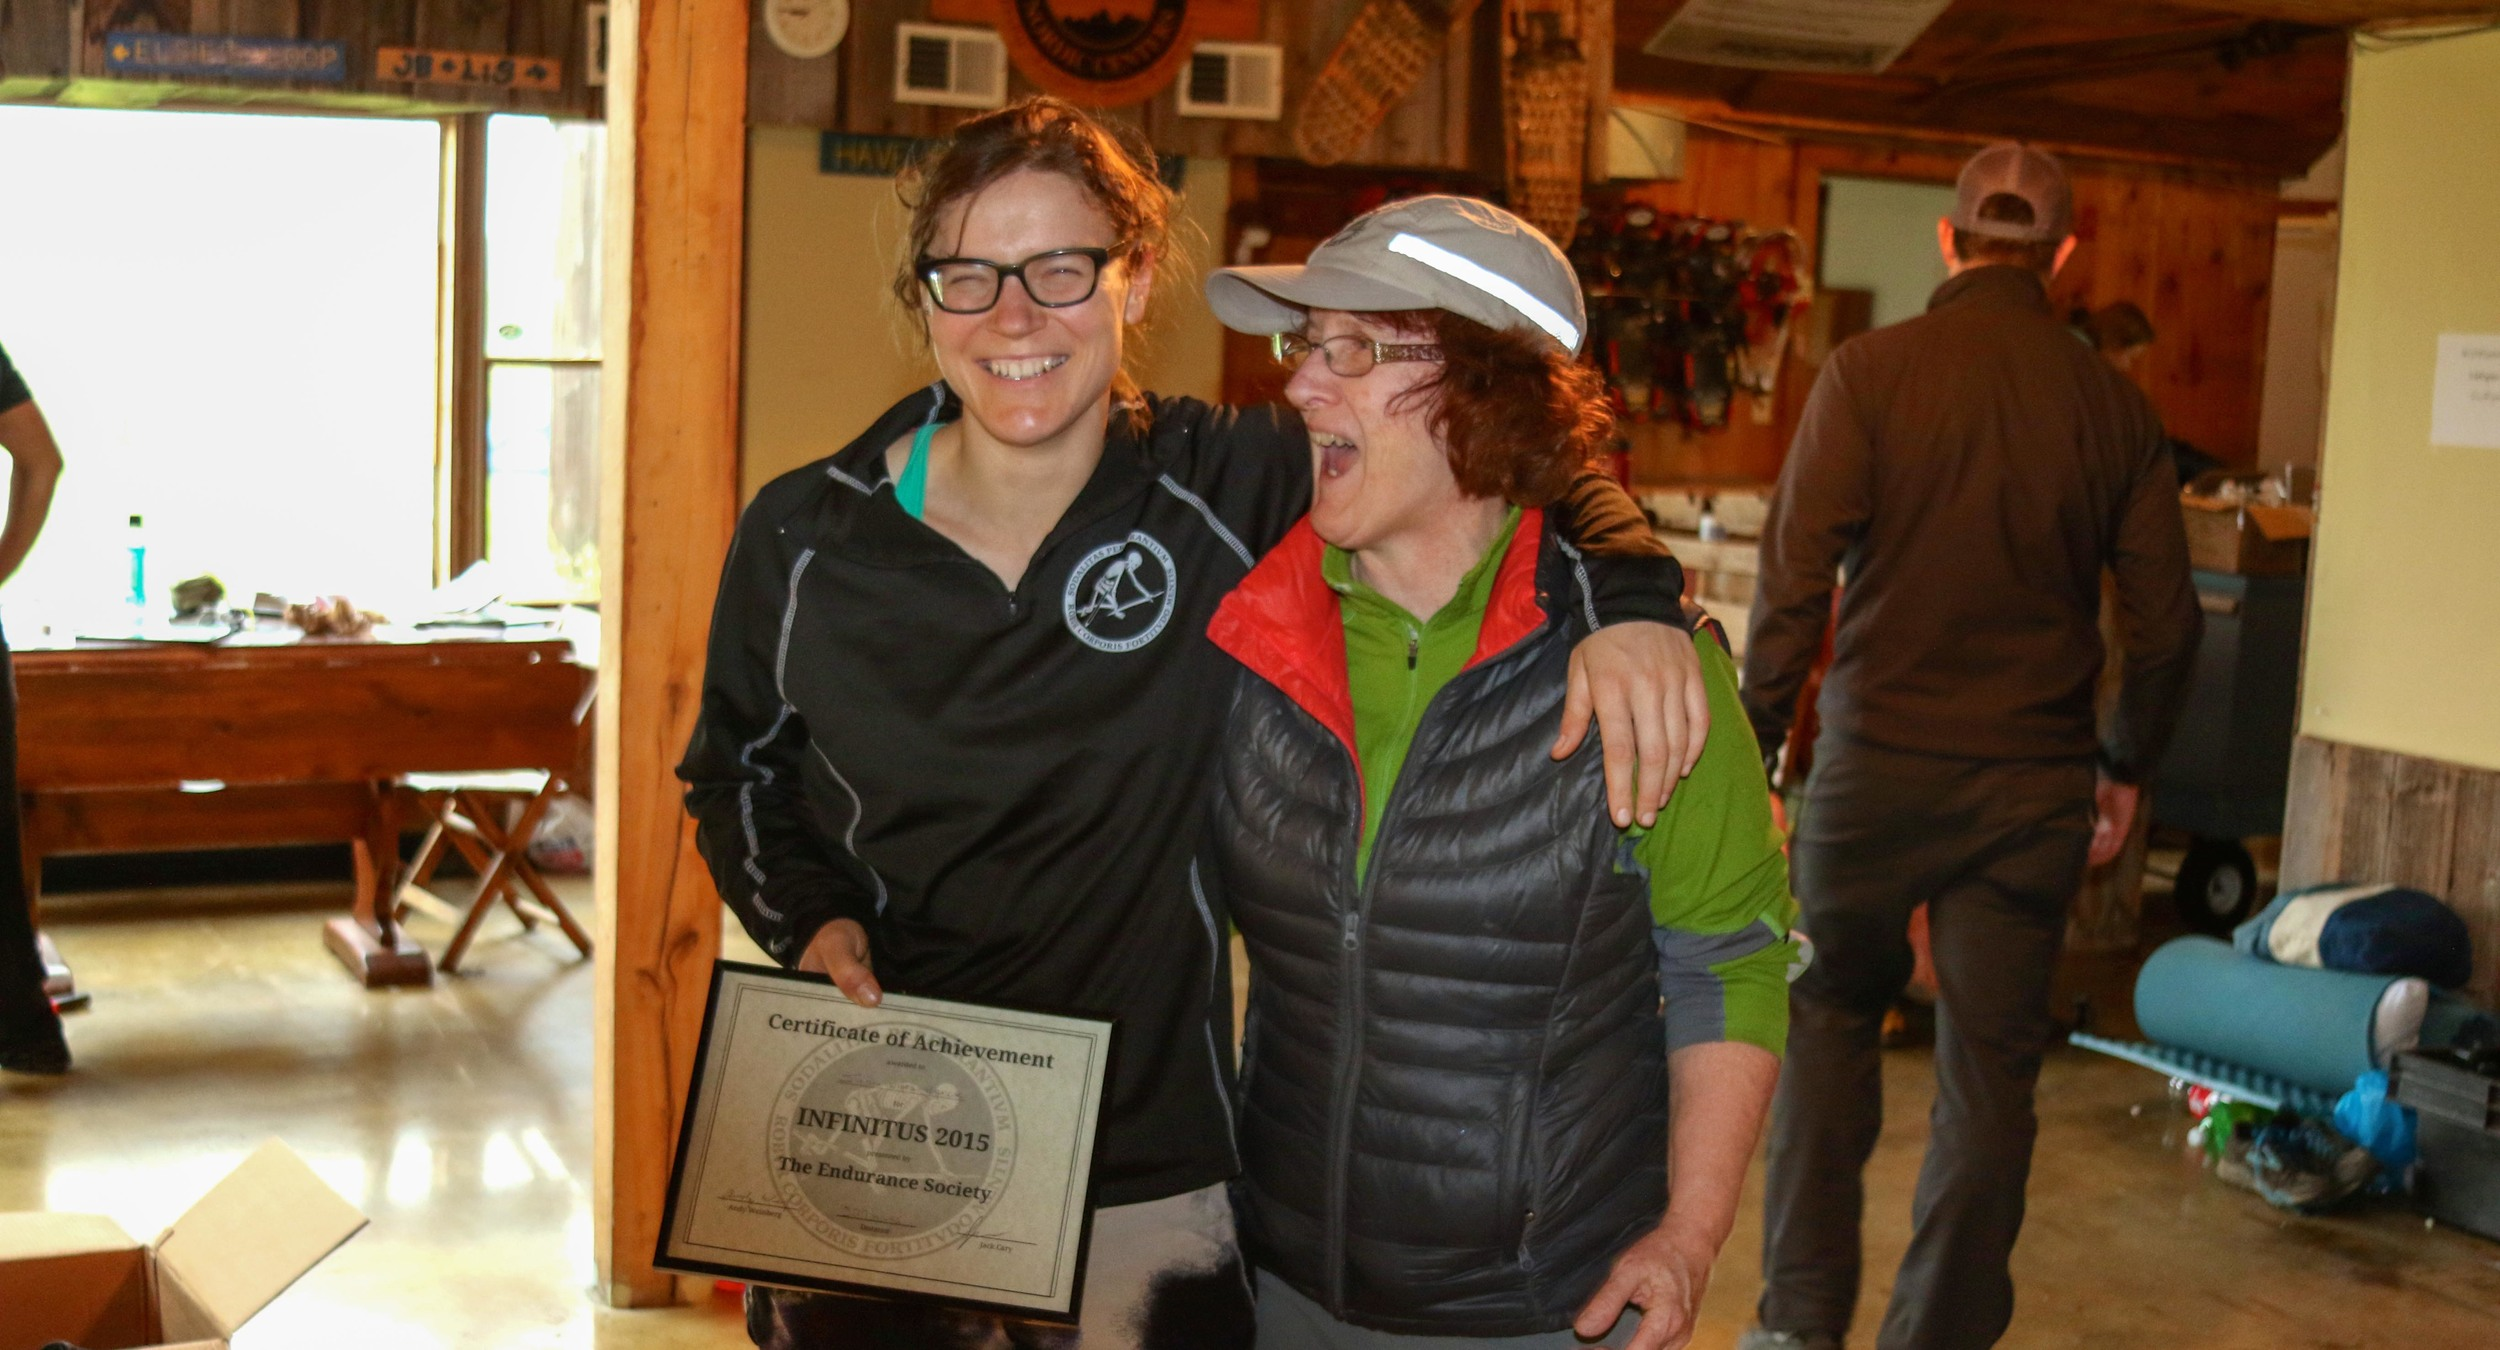 Jordan and her mom, Rebecca, celebrate at the end of the 888k race.